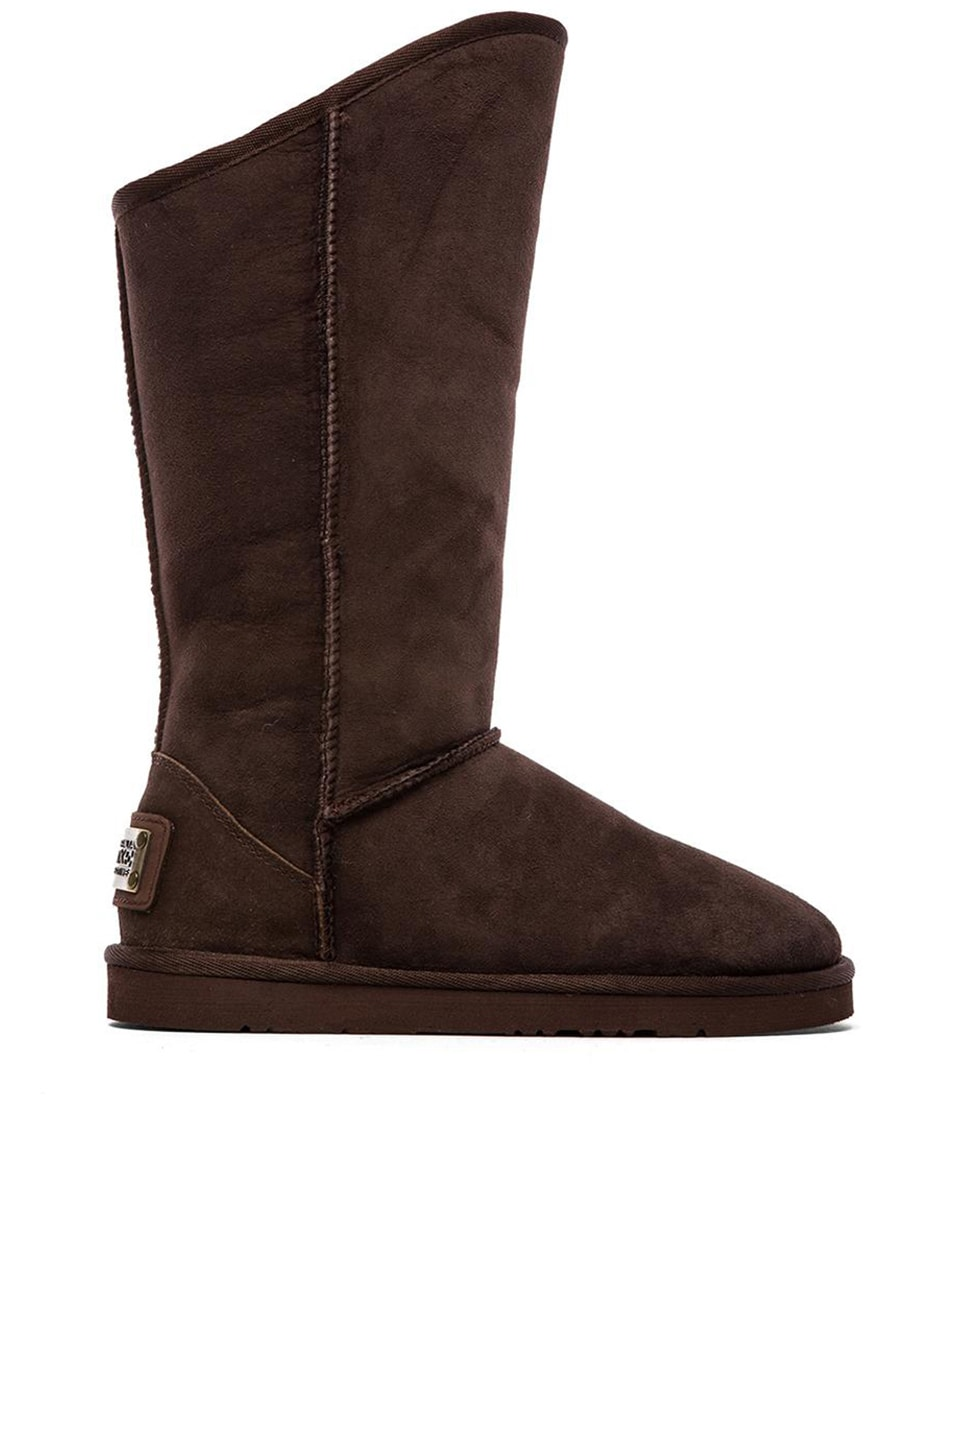 Australia Luxe Collective Cosy Tall Boot in Beva